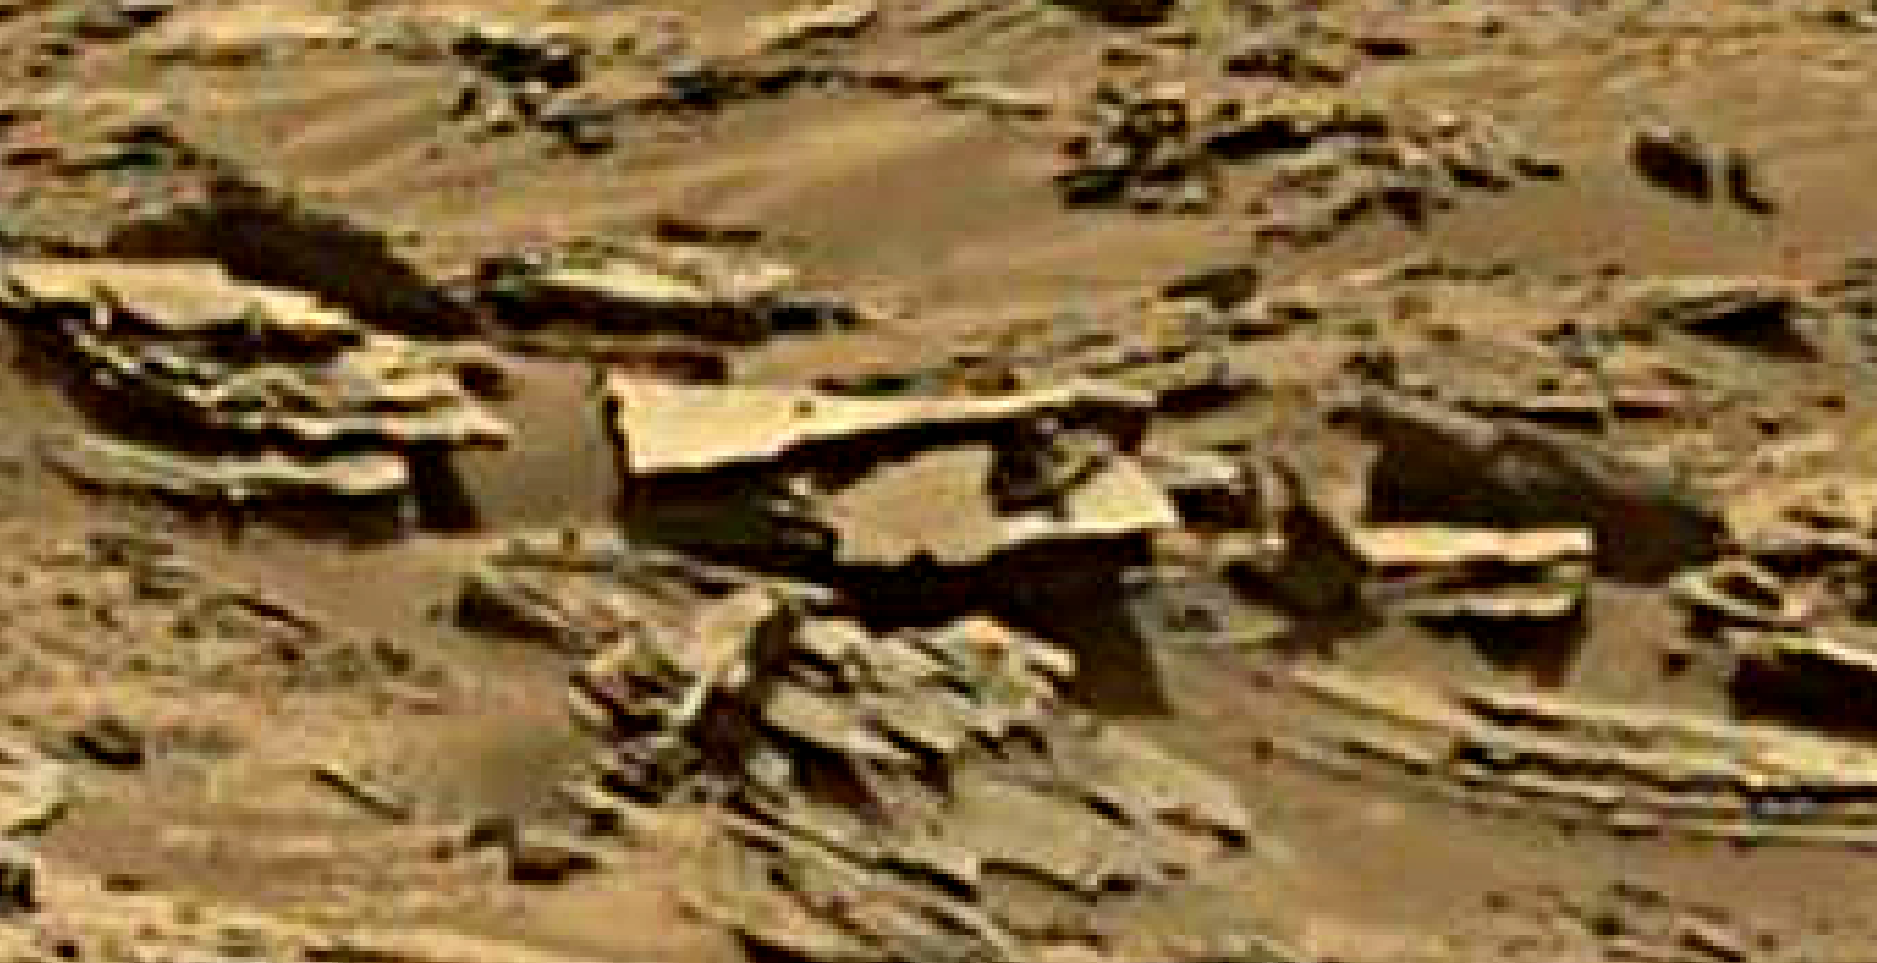 mars sol 1344 anomaly-artifacts 2 was life on mars